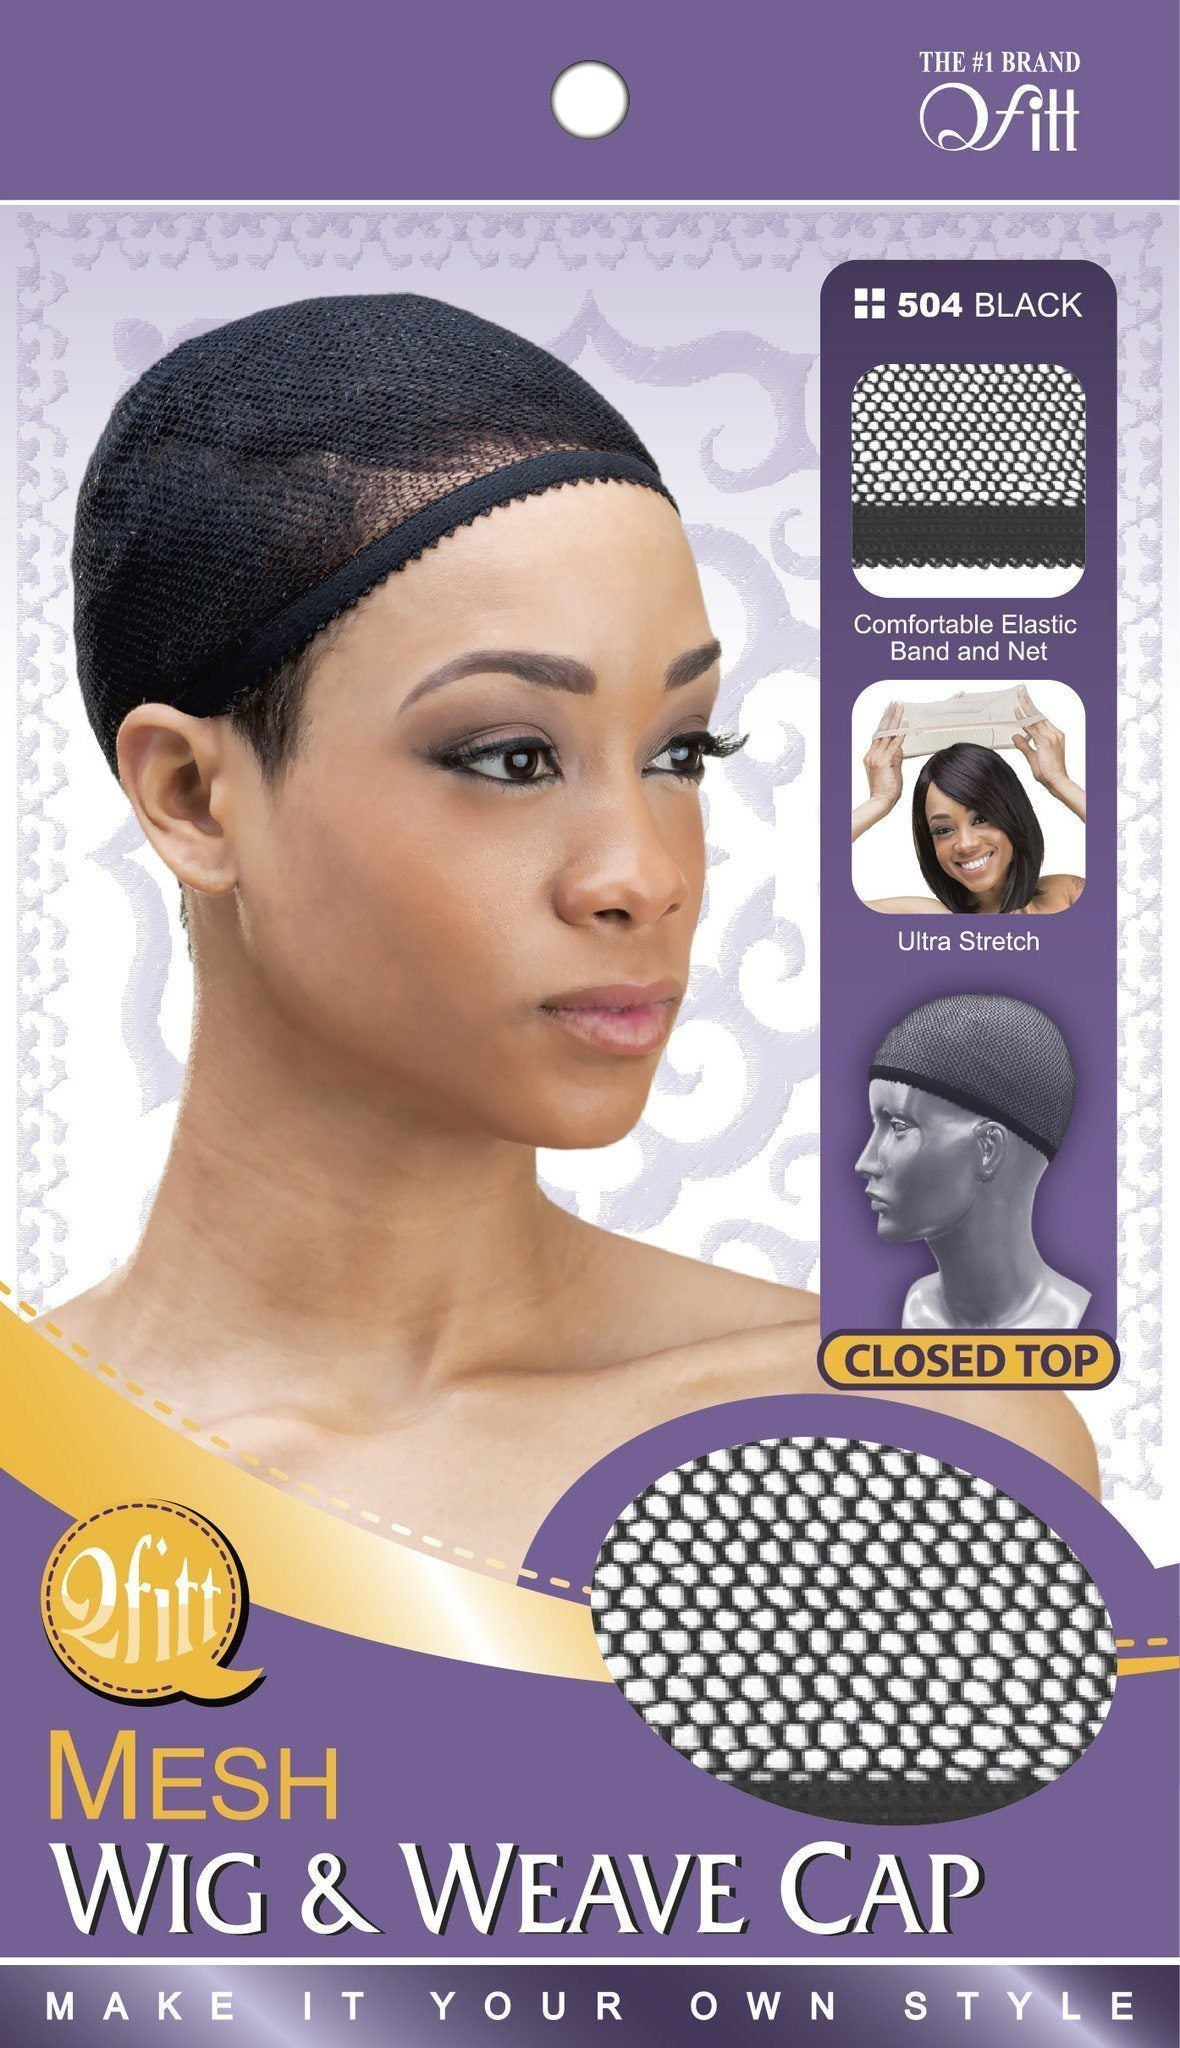 #504 Mesh Wig & Weave Cap Closed Top / Black (Dz)